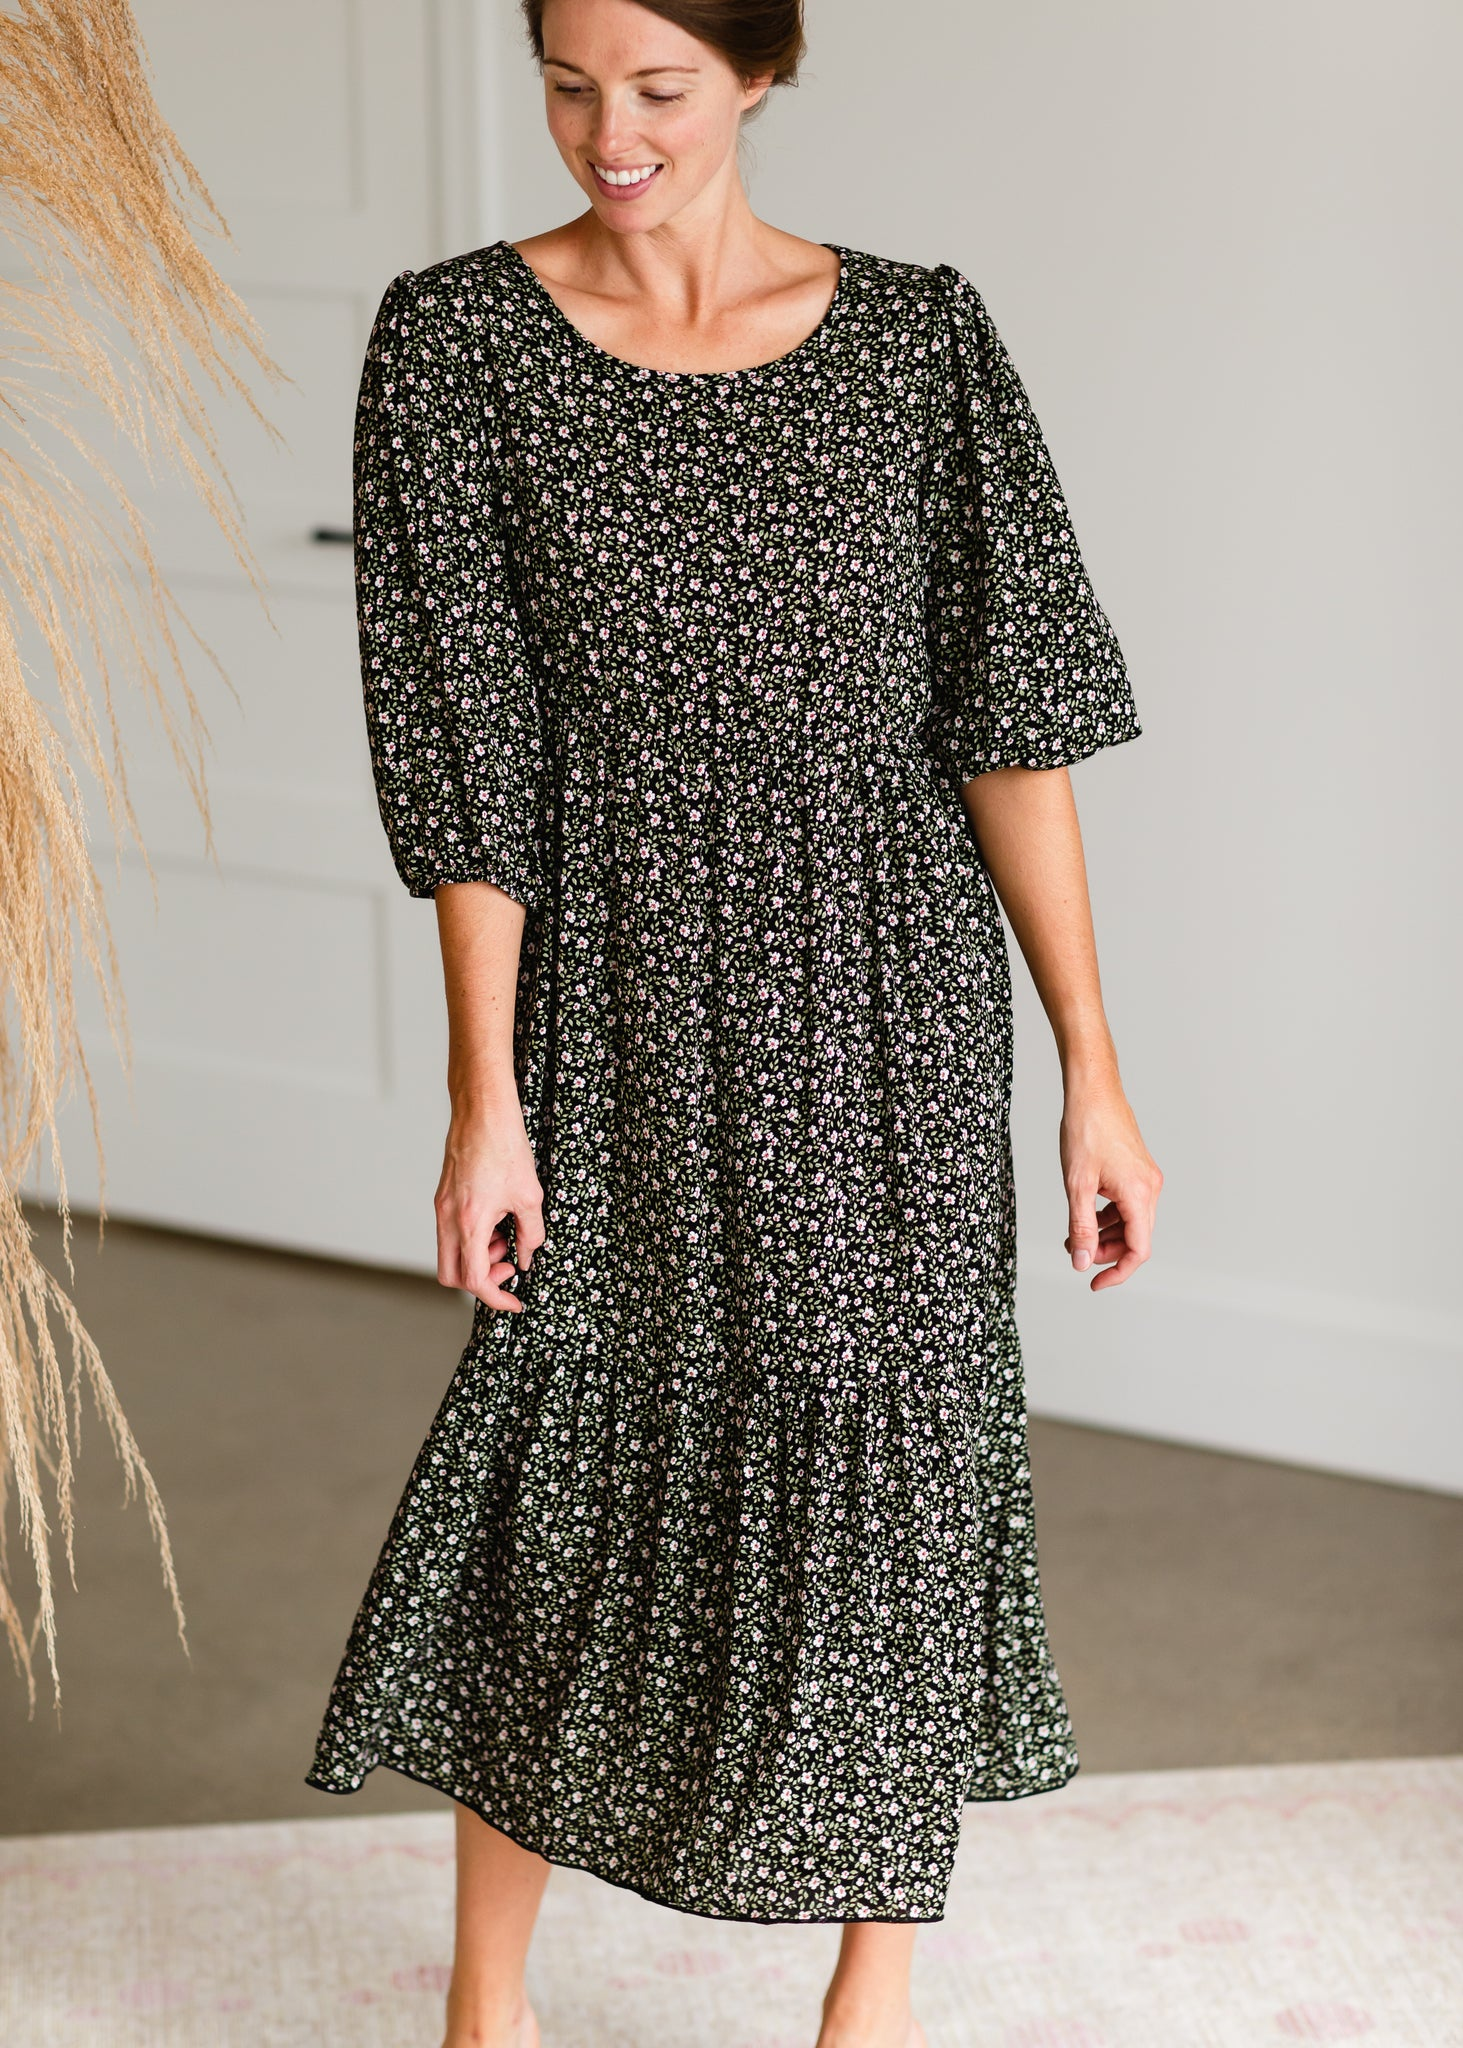 Tiered Black Floral Print Maxi Dress - FINAL SALE